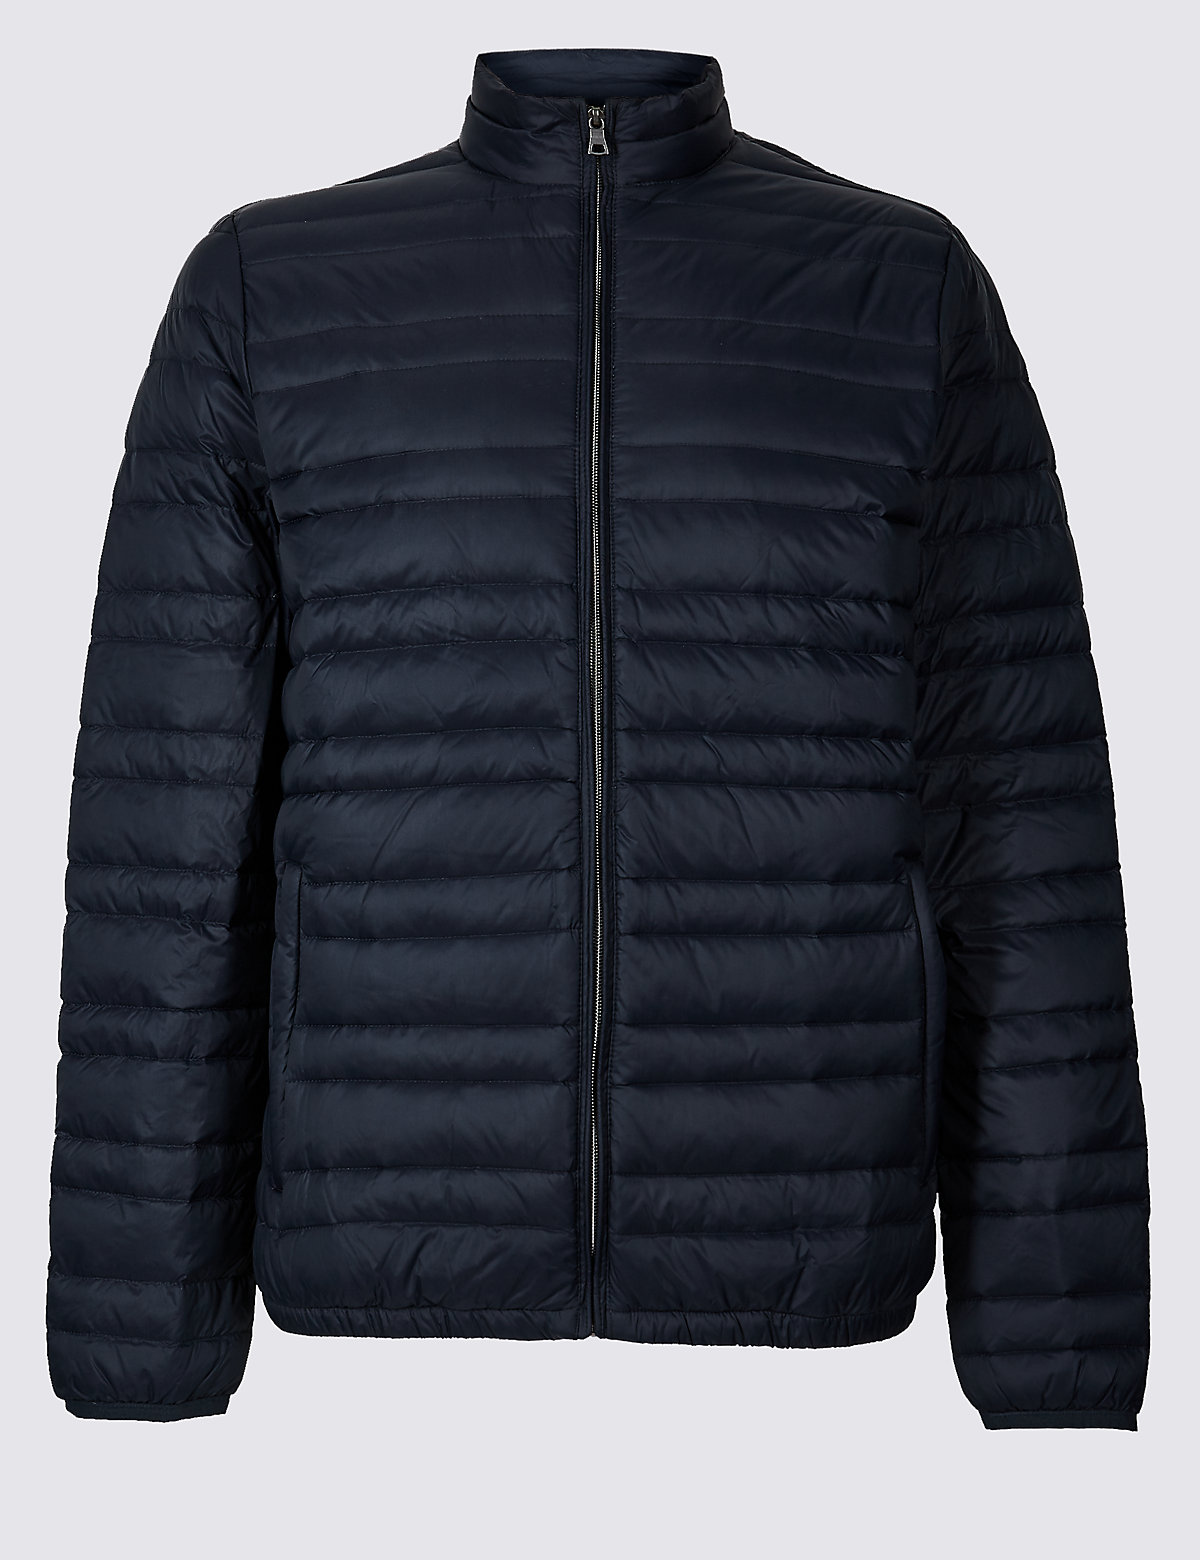 Marks & Spencer Navy Down & Feather Jacket with Stormwear™